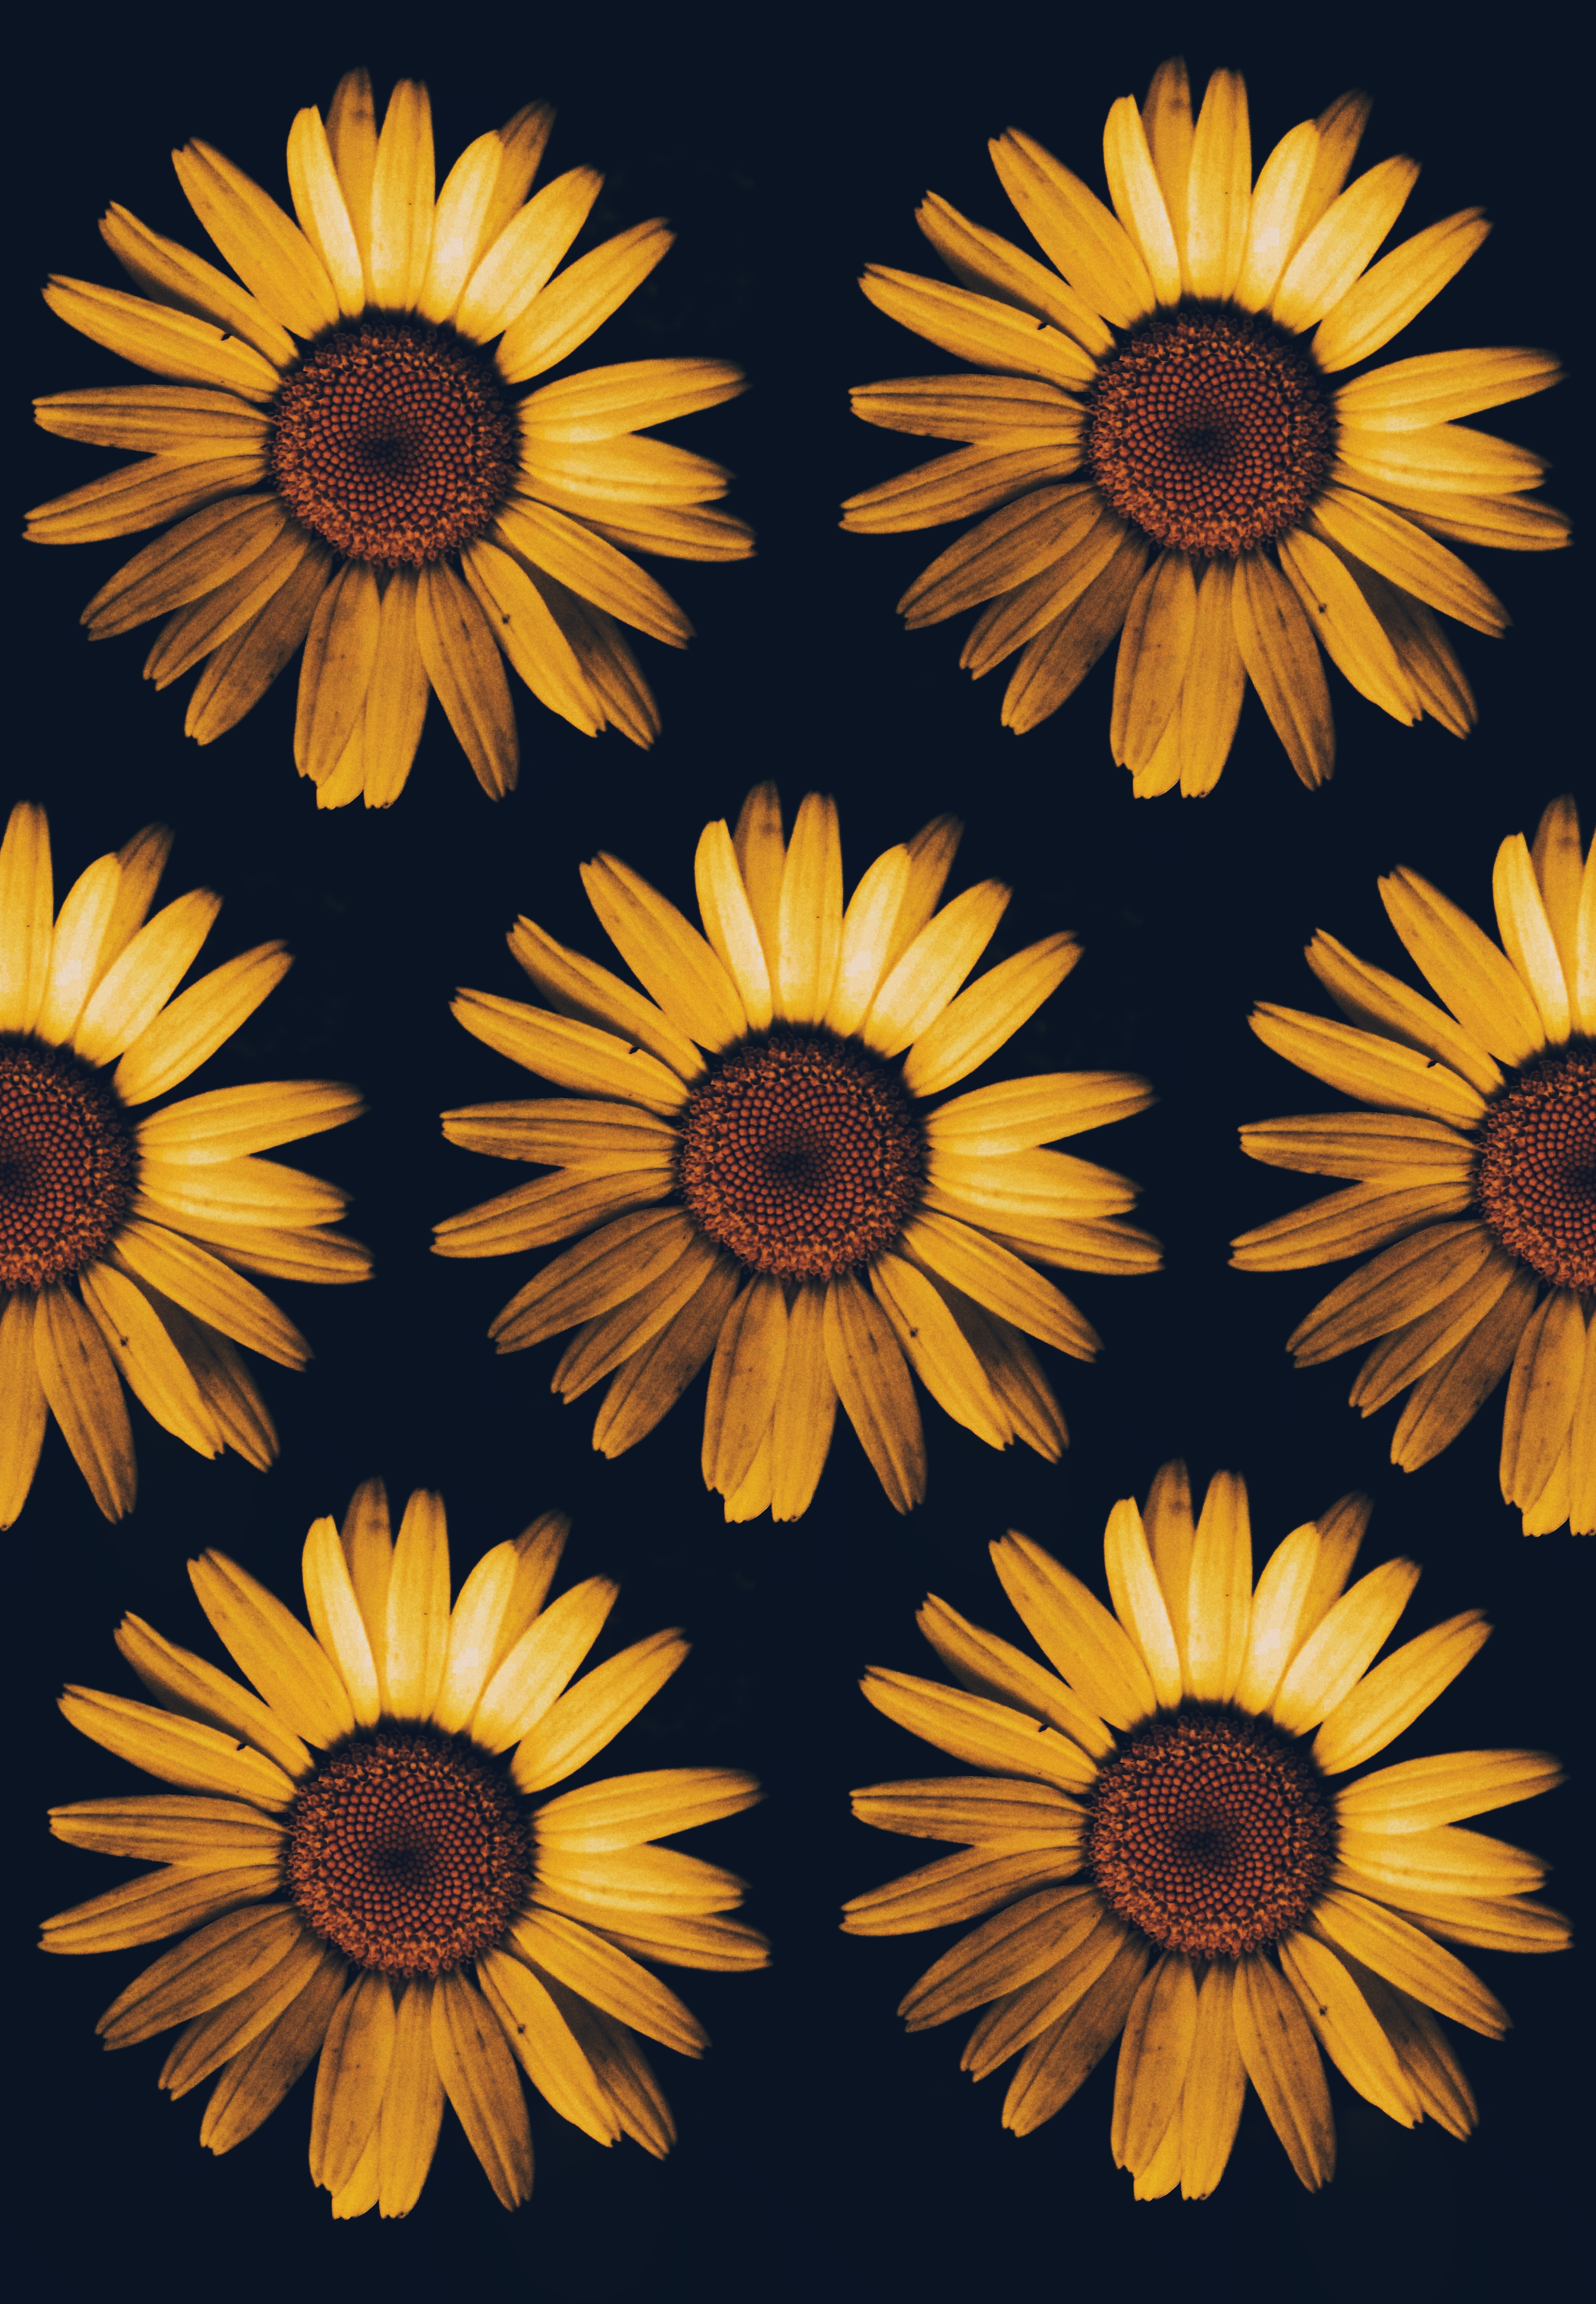 20  sunflower pictures  hq